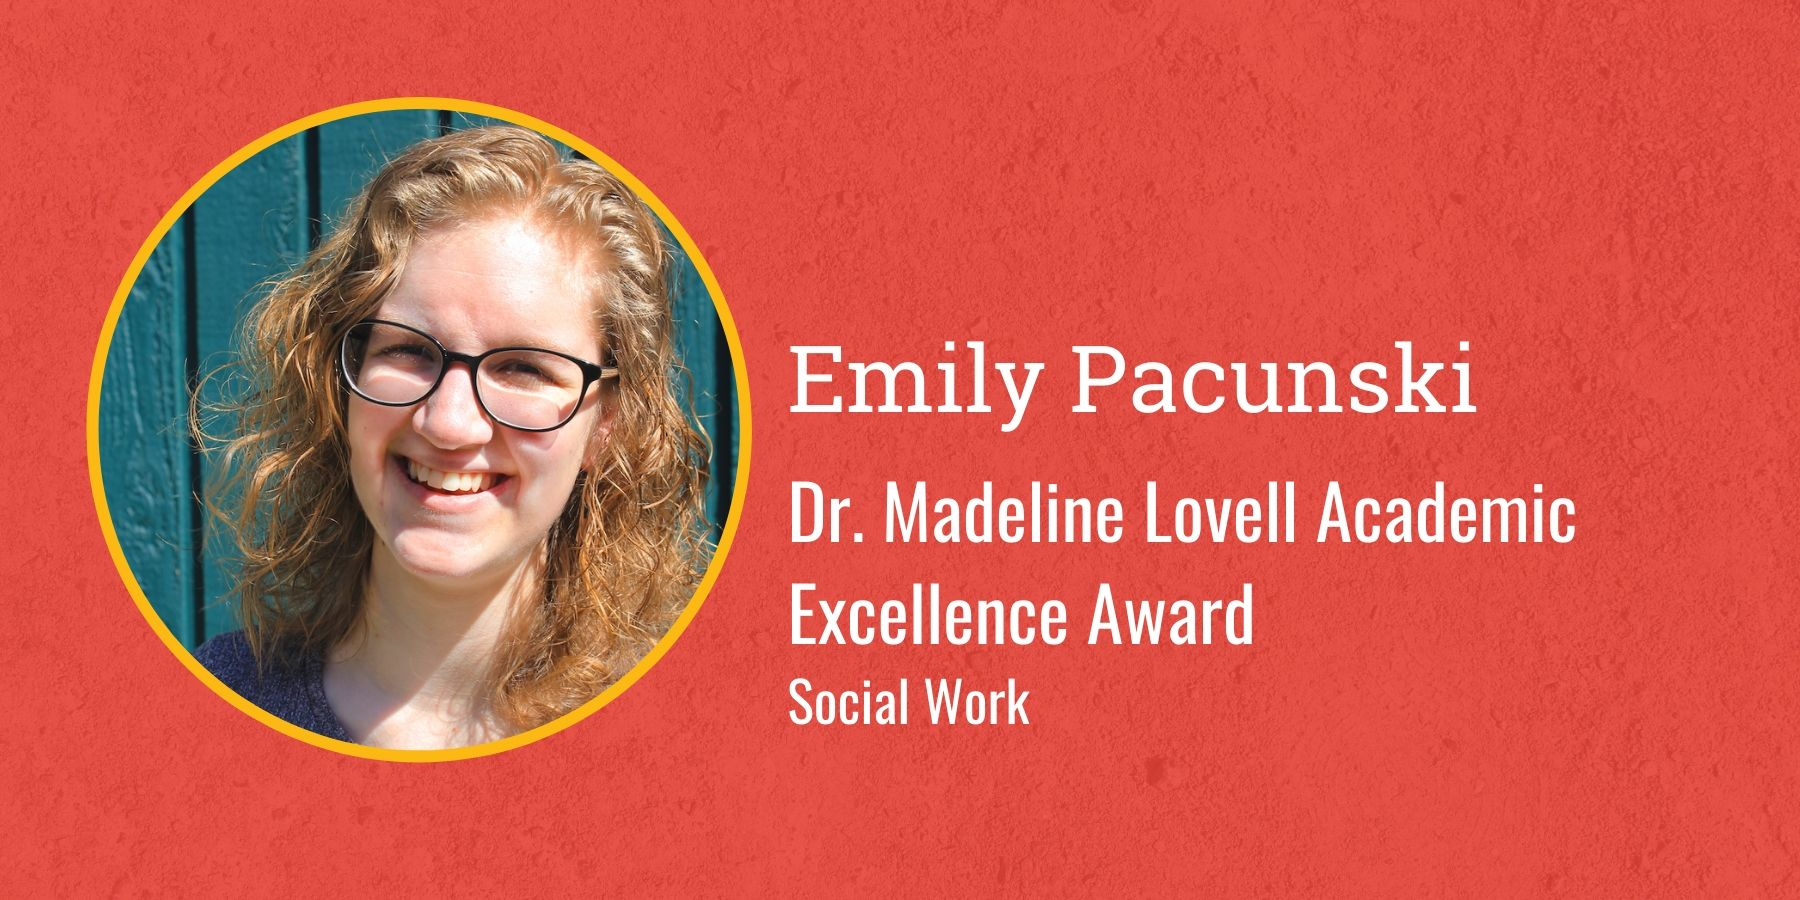 Photo of Emily Pacunksi and text Dr. Madeline Lovell Academic Excellence Award, Social Work